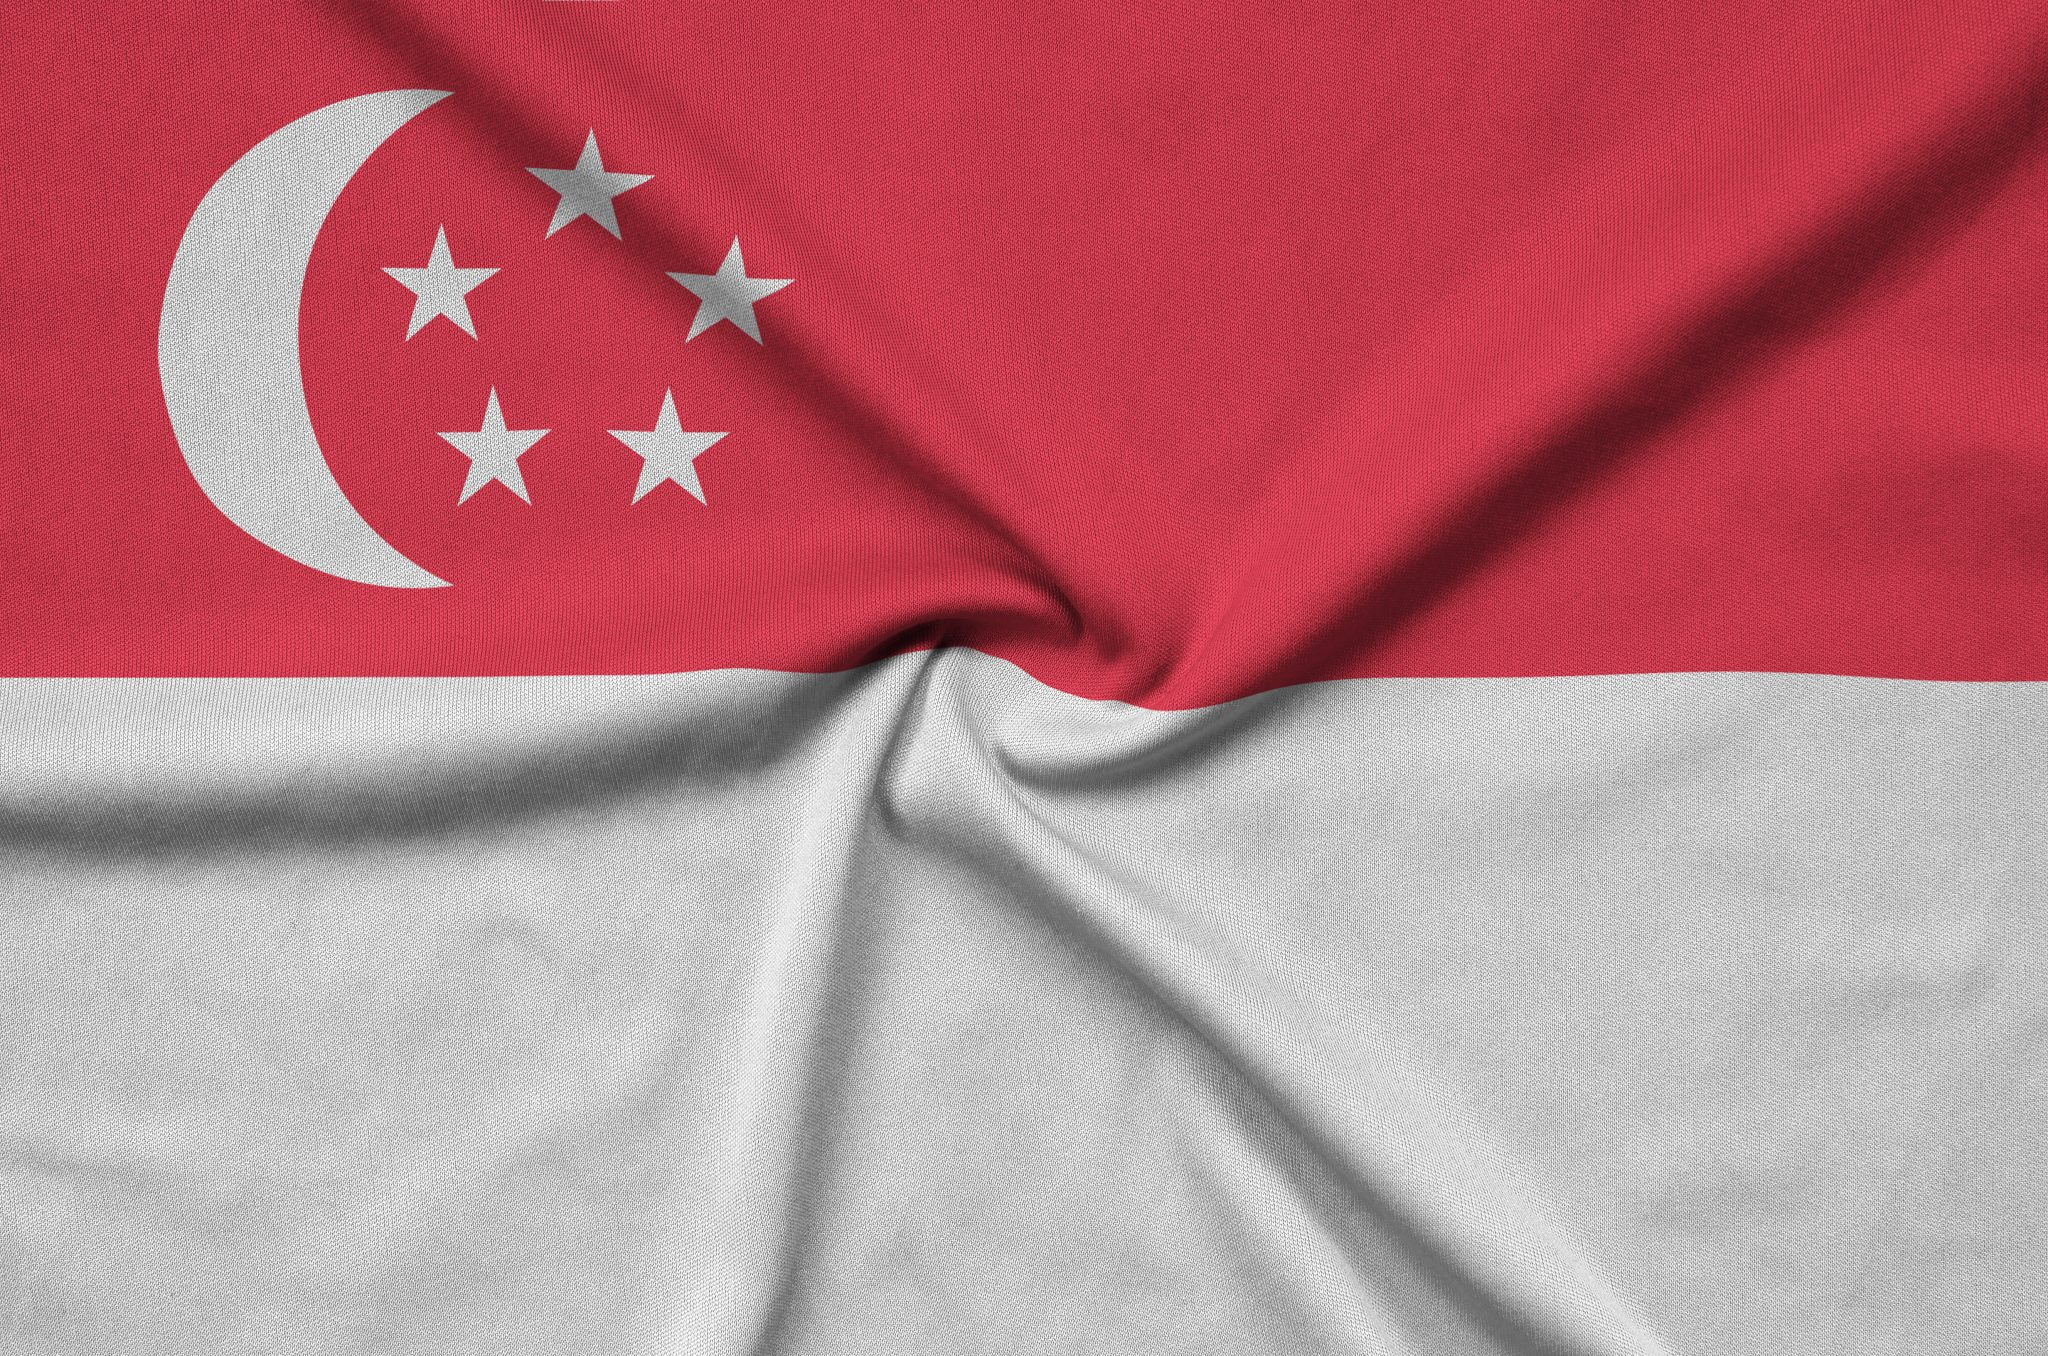 Singapore flag  is depicted on a sports cloth fabric with many folds. Sport team waving banner